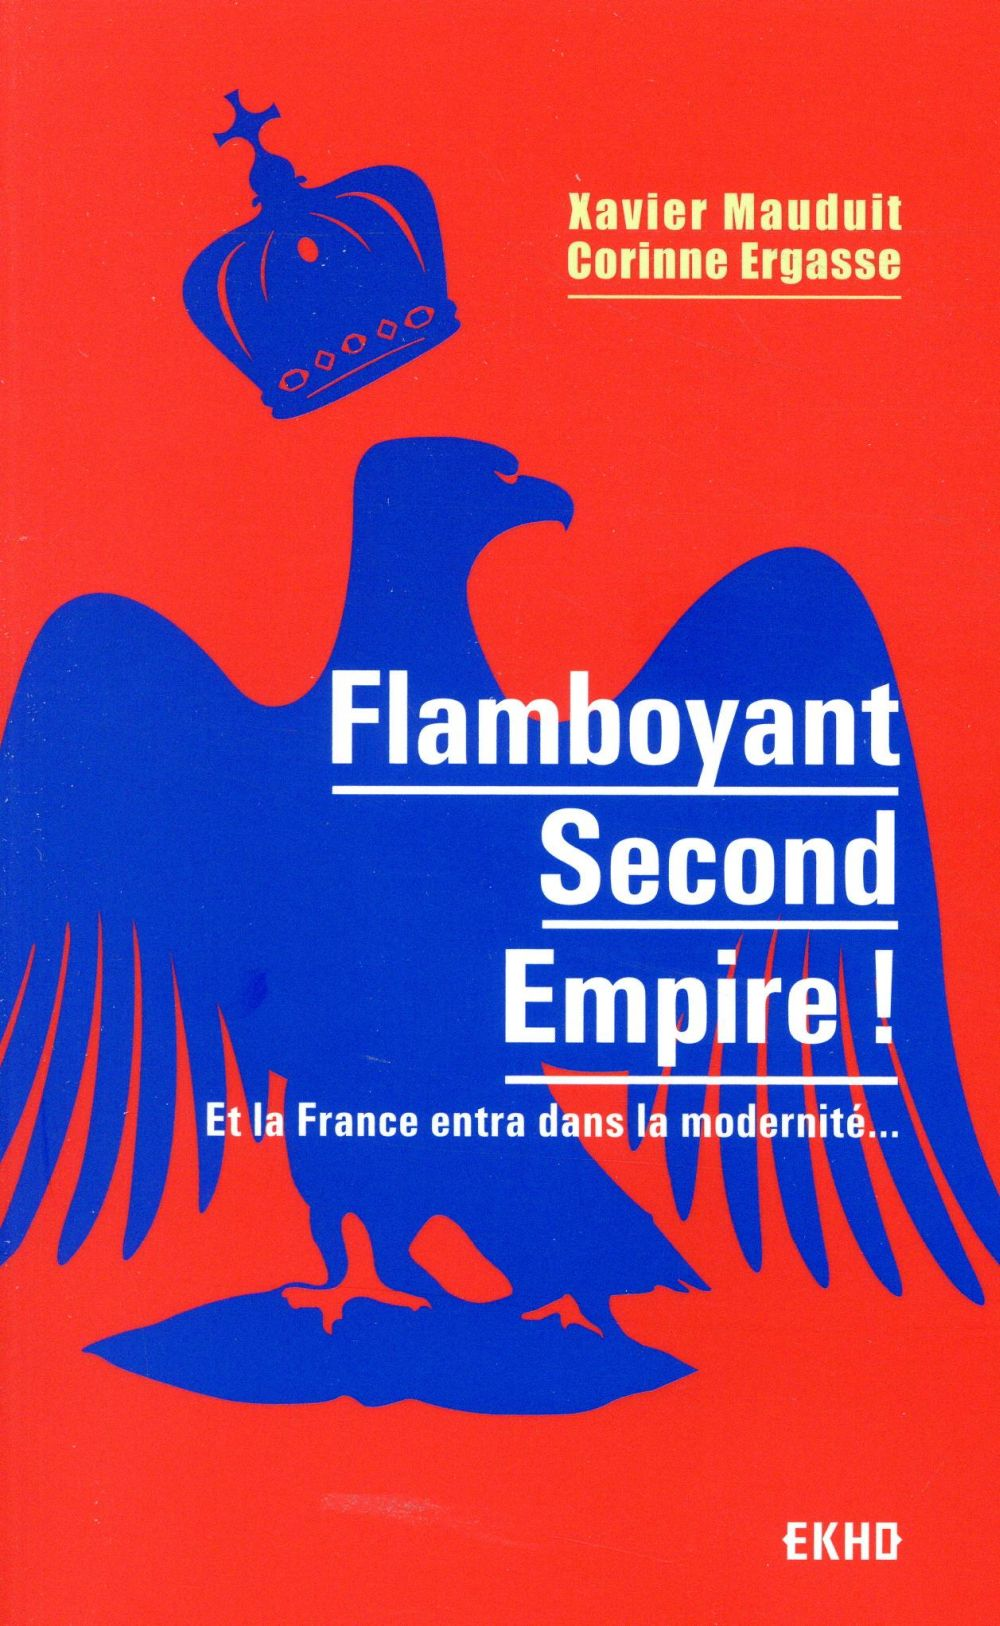 Flamboyant Second Empire ! et la France entra dans la modernité...